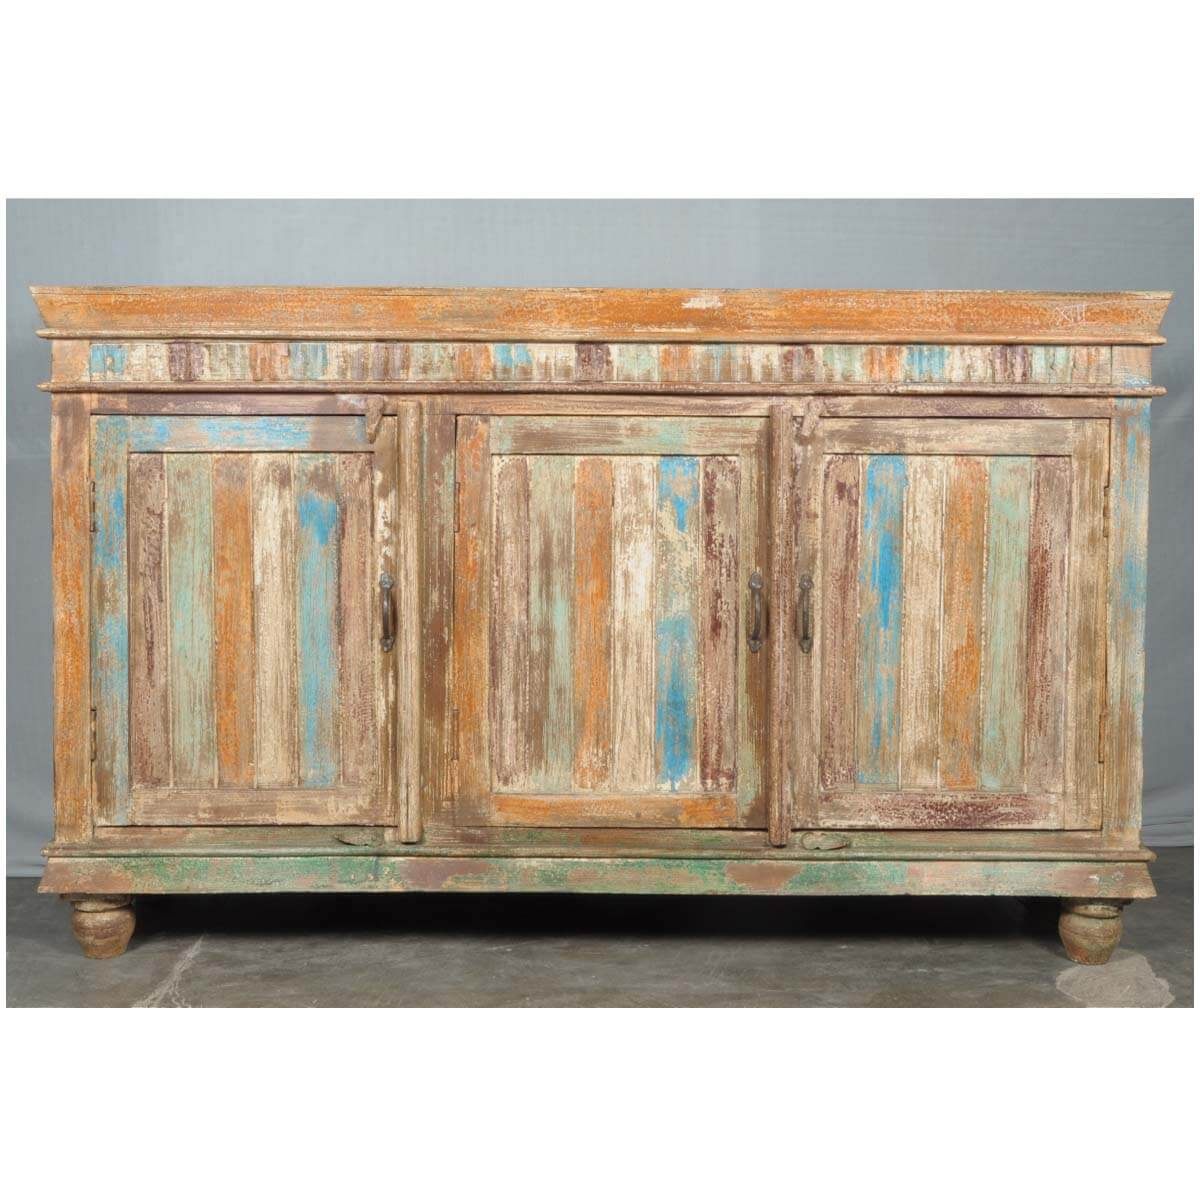 Rustic reclaimed wood farmhouse buffet sideboard storage